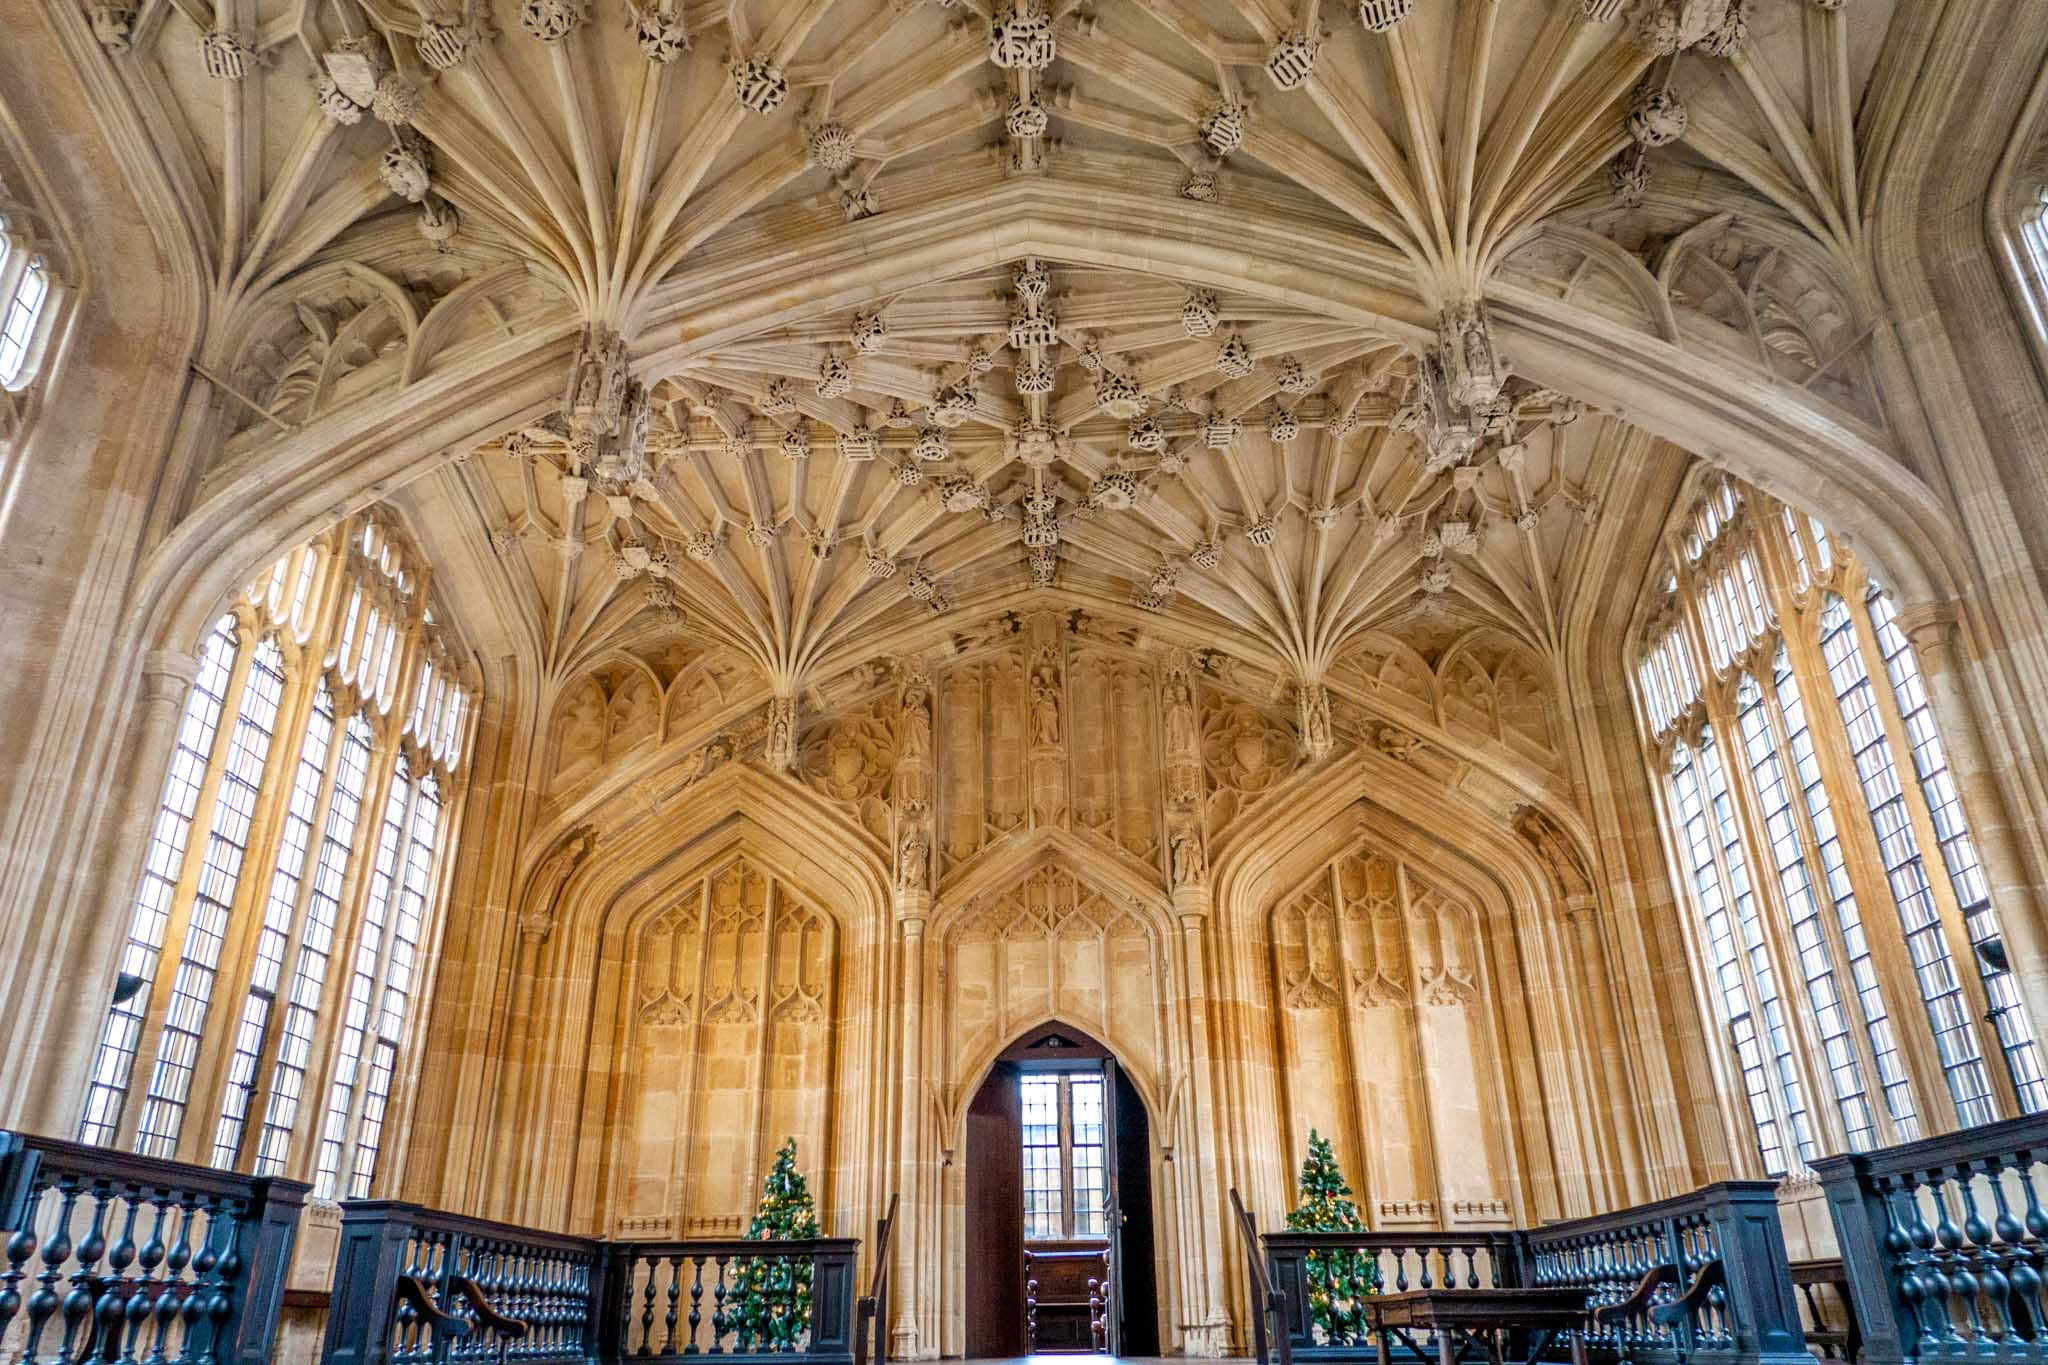 Ornate, vaulted ceilings of the 15th-century Divinity School room